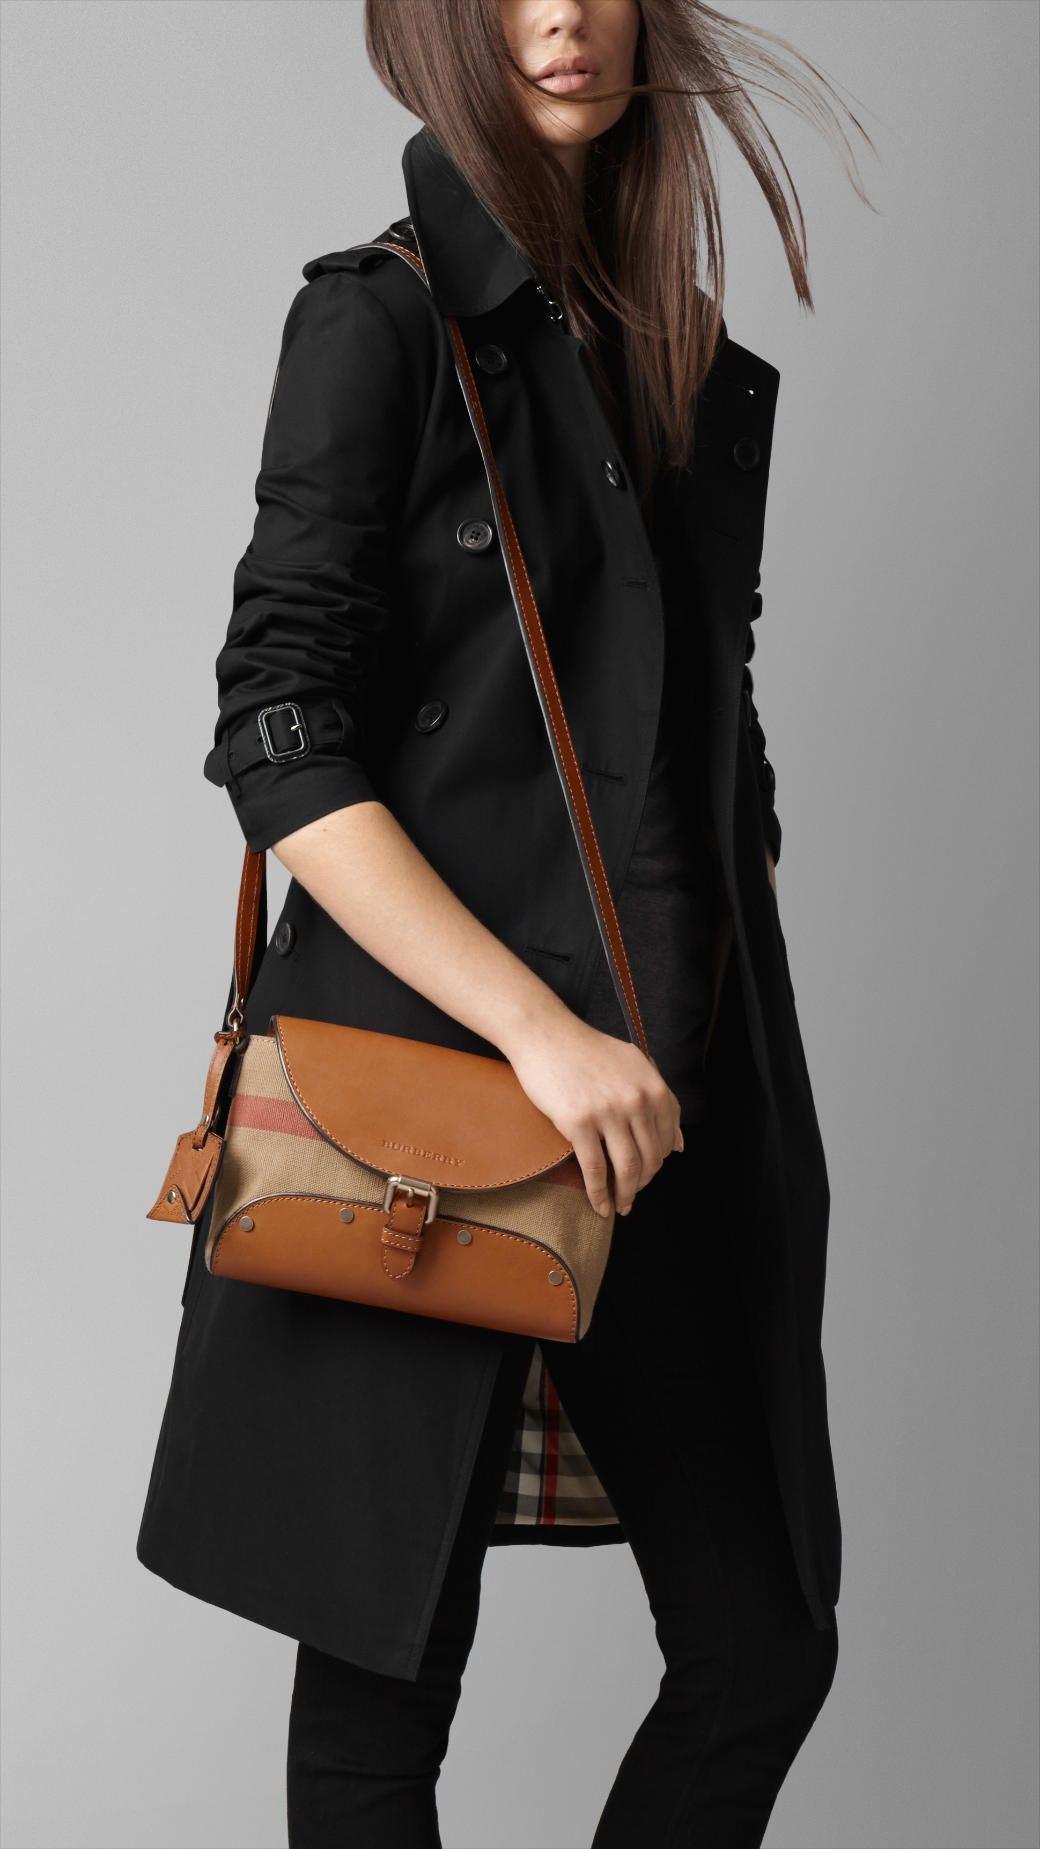 7e292c9d8 Burberry - All Bags | Style | Burberry crossbody bag, Leather ...